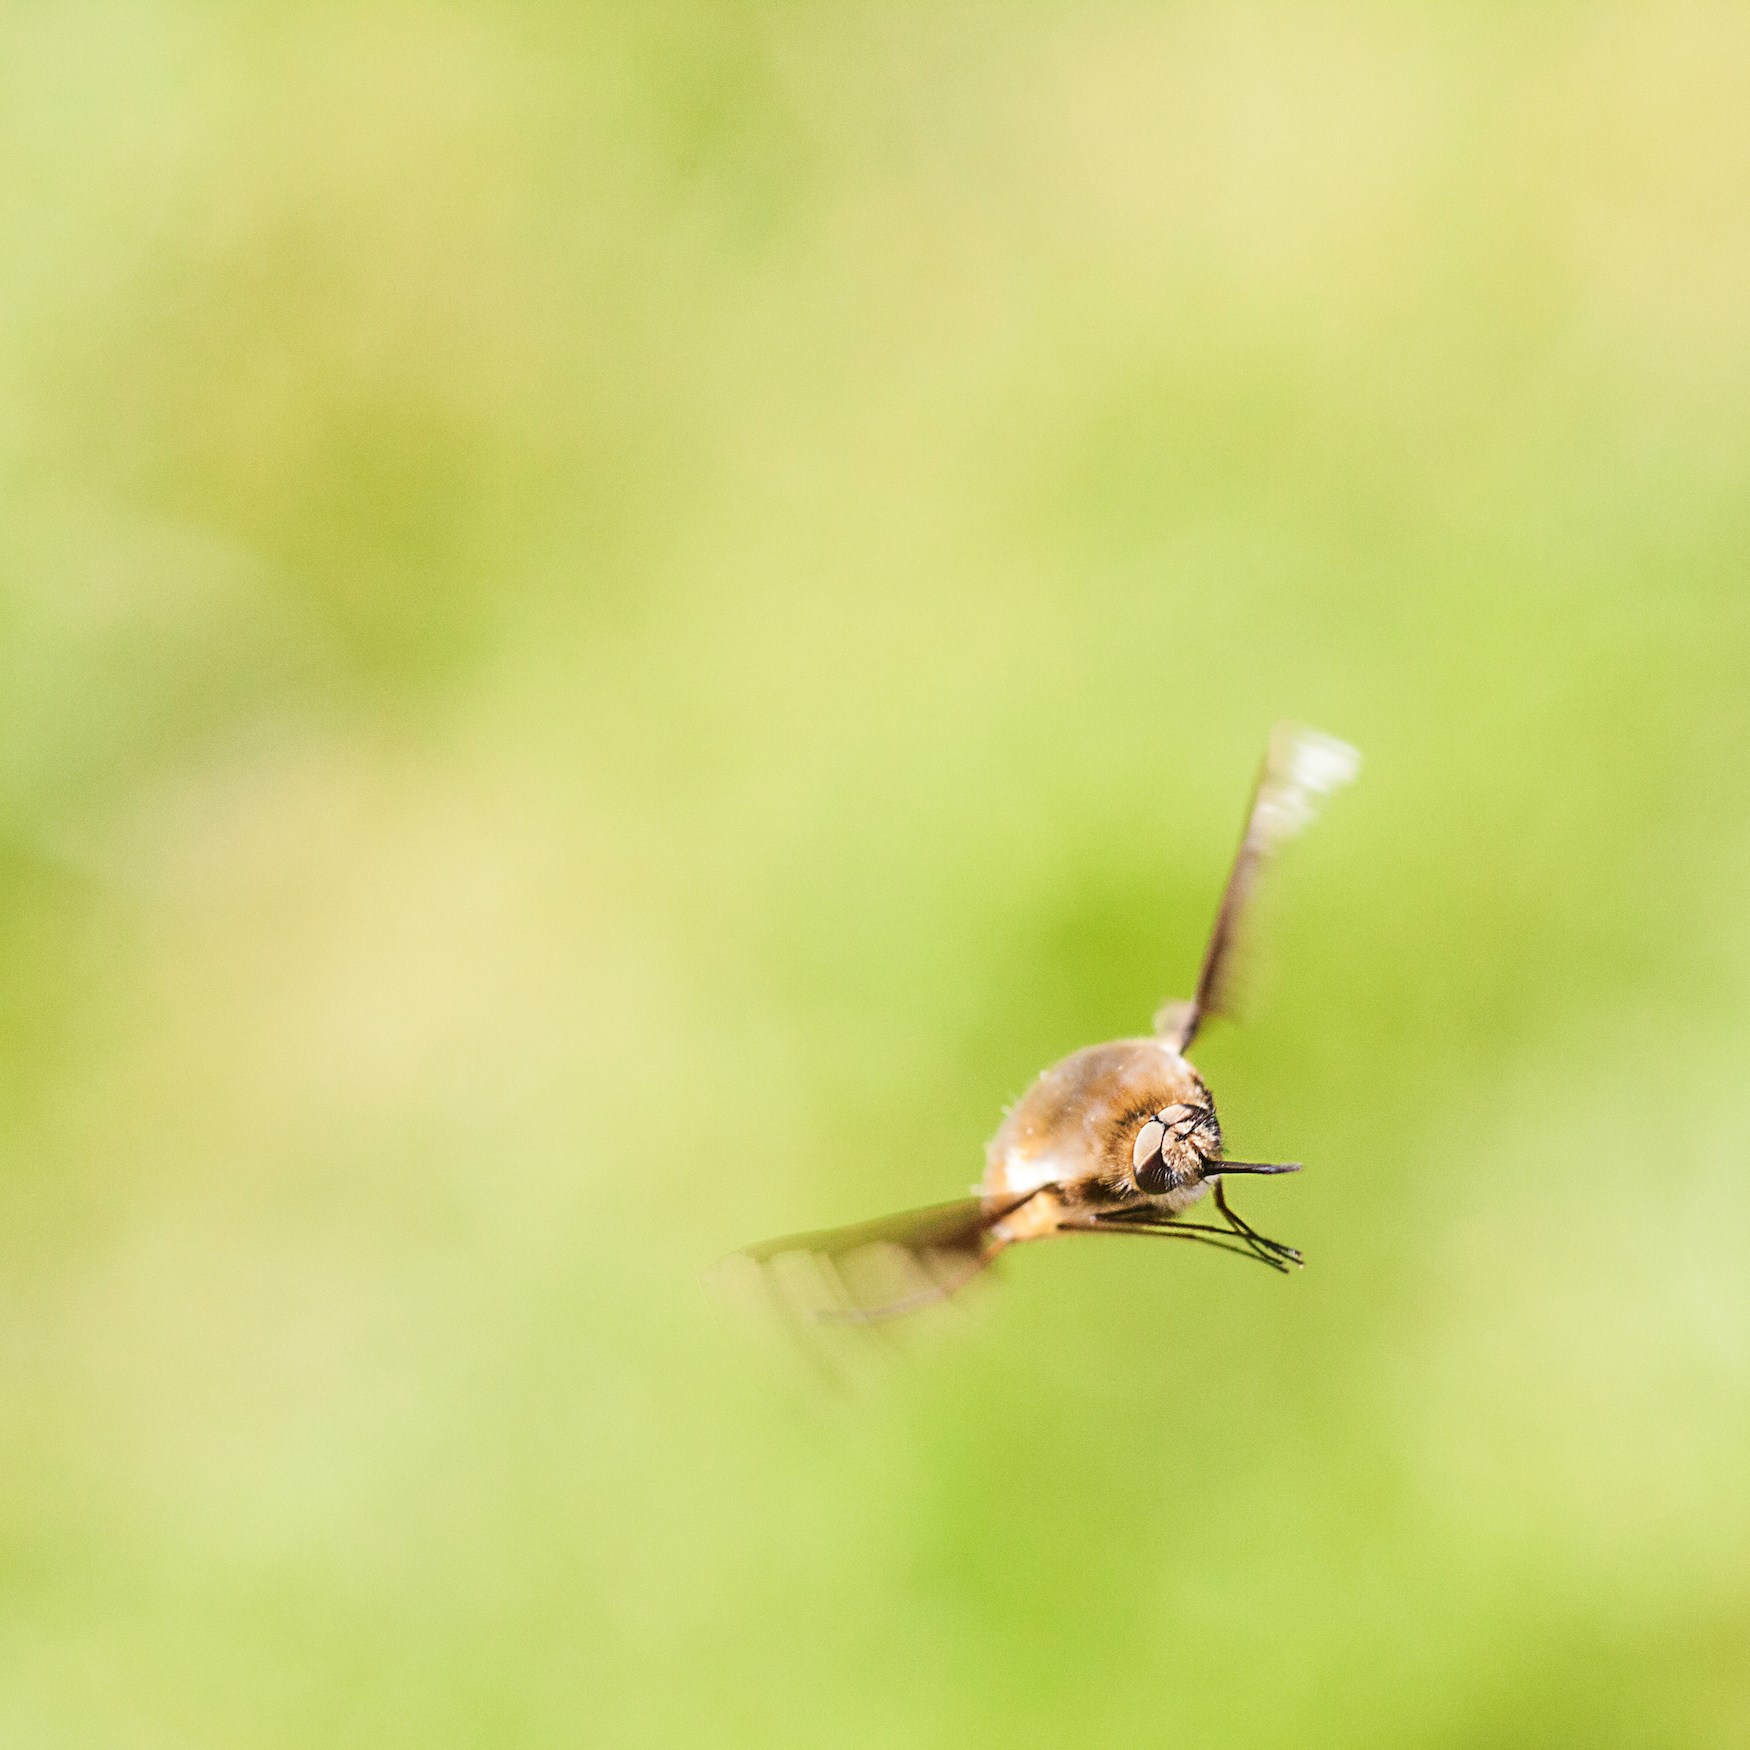 Bee Fly in Flight